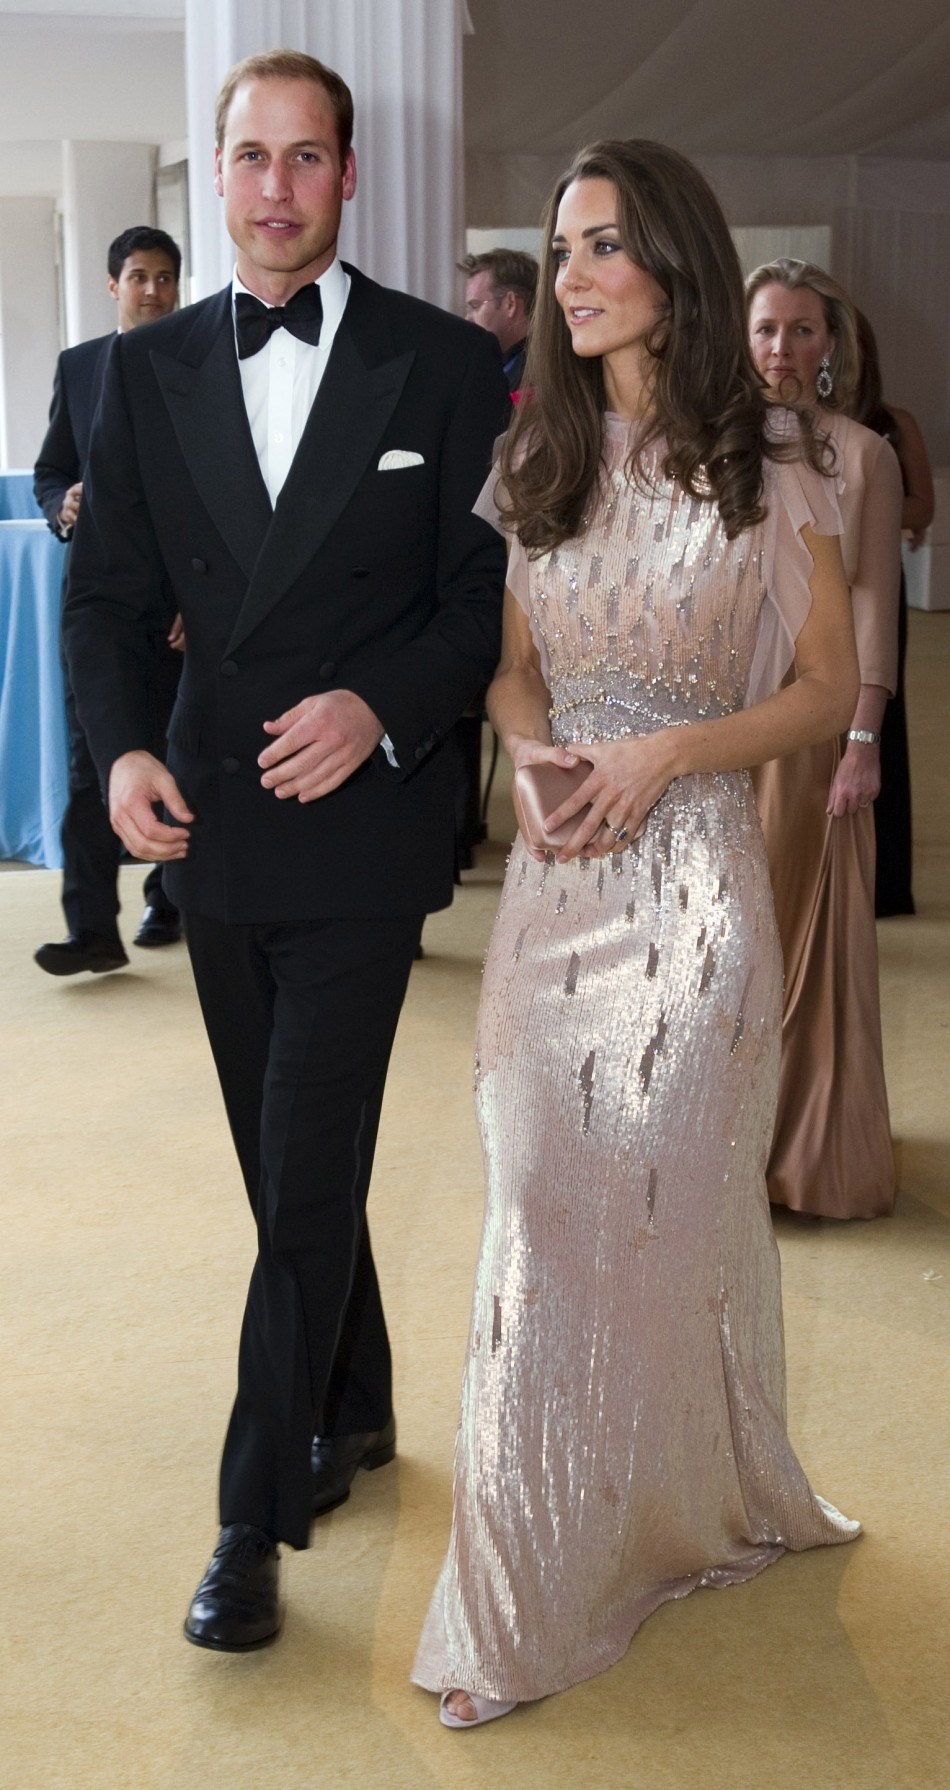 Britains Prince William and his wife Catherine, Duchess of Cambridge arrive at ARK gala dinner at Kensington Palace in London